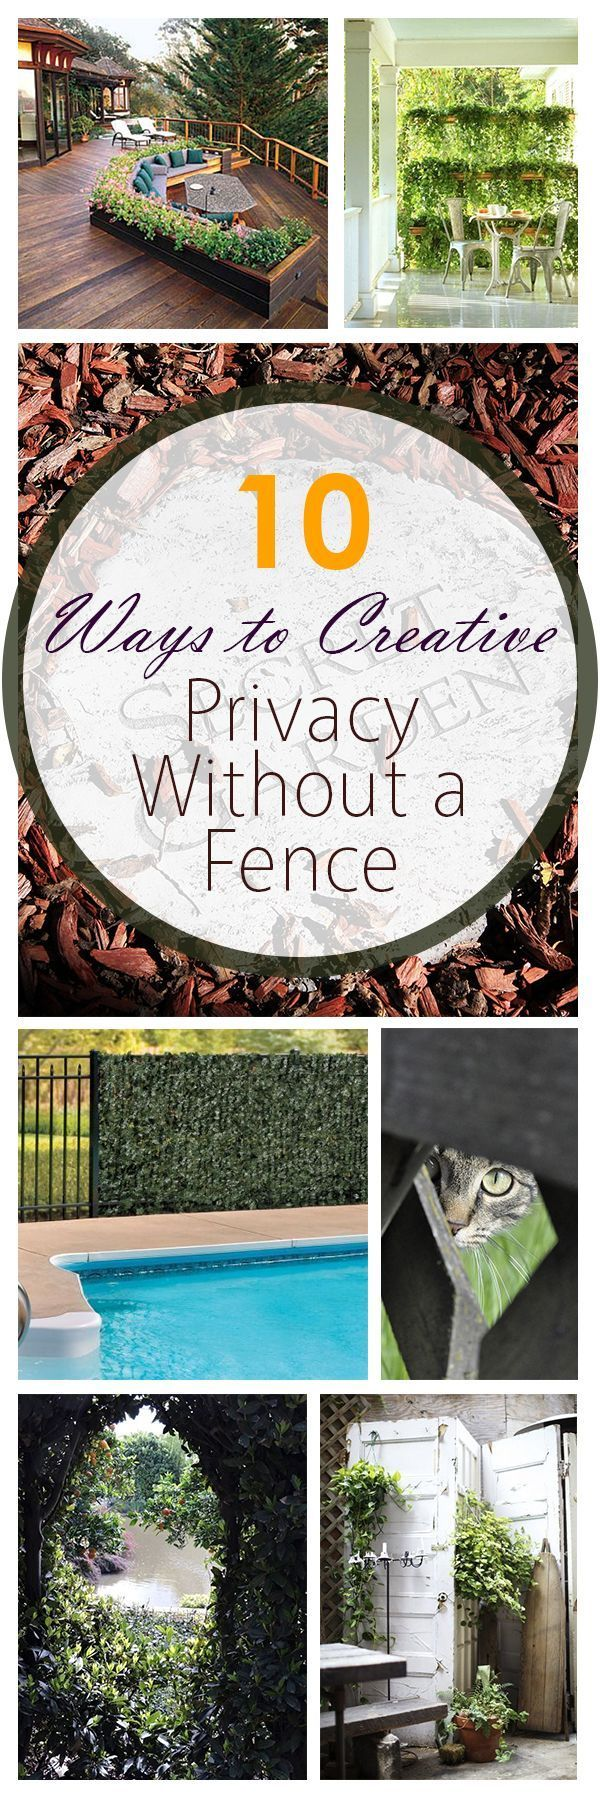 10 Ways to Create Privacy Without a Fence ~ Bees and Roses